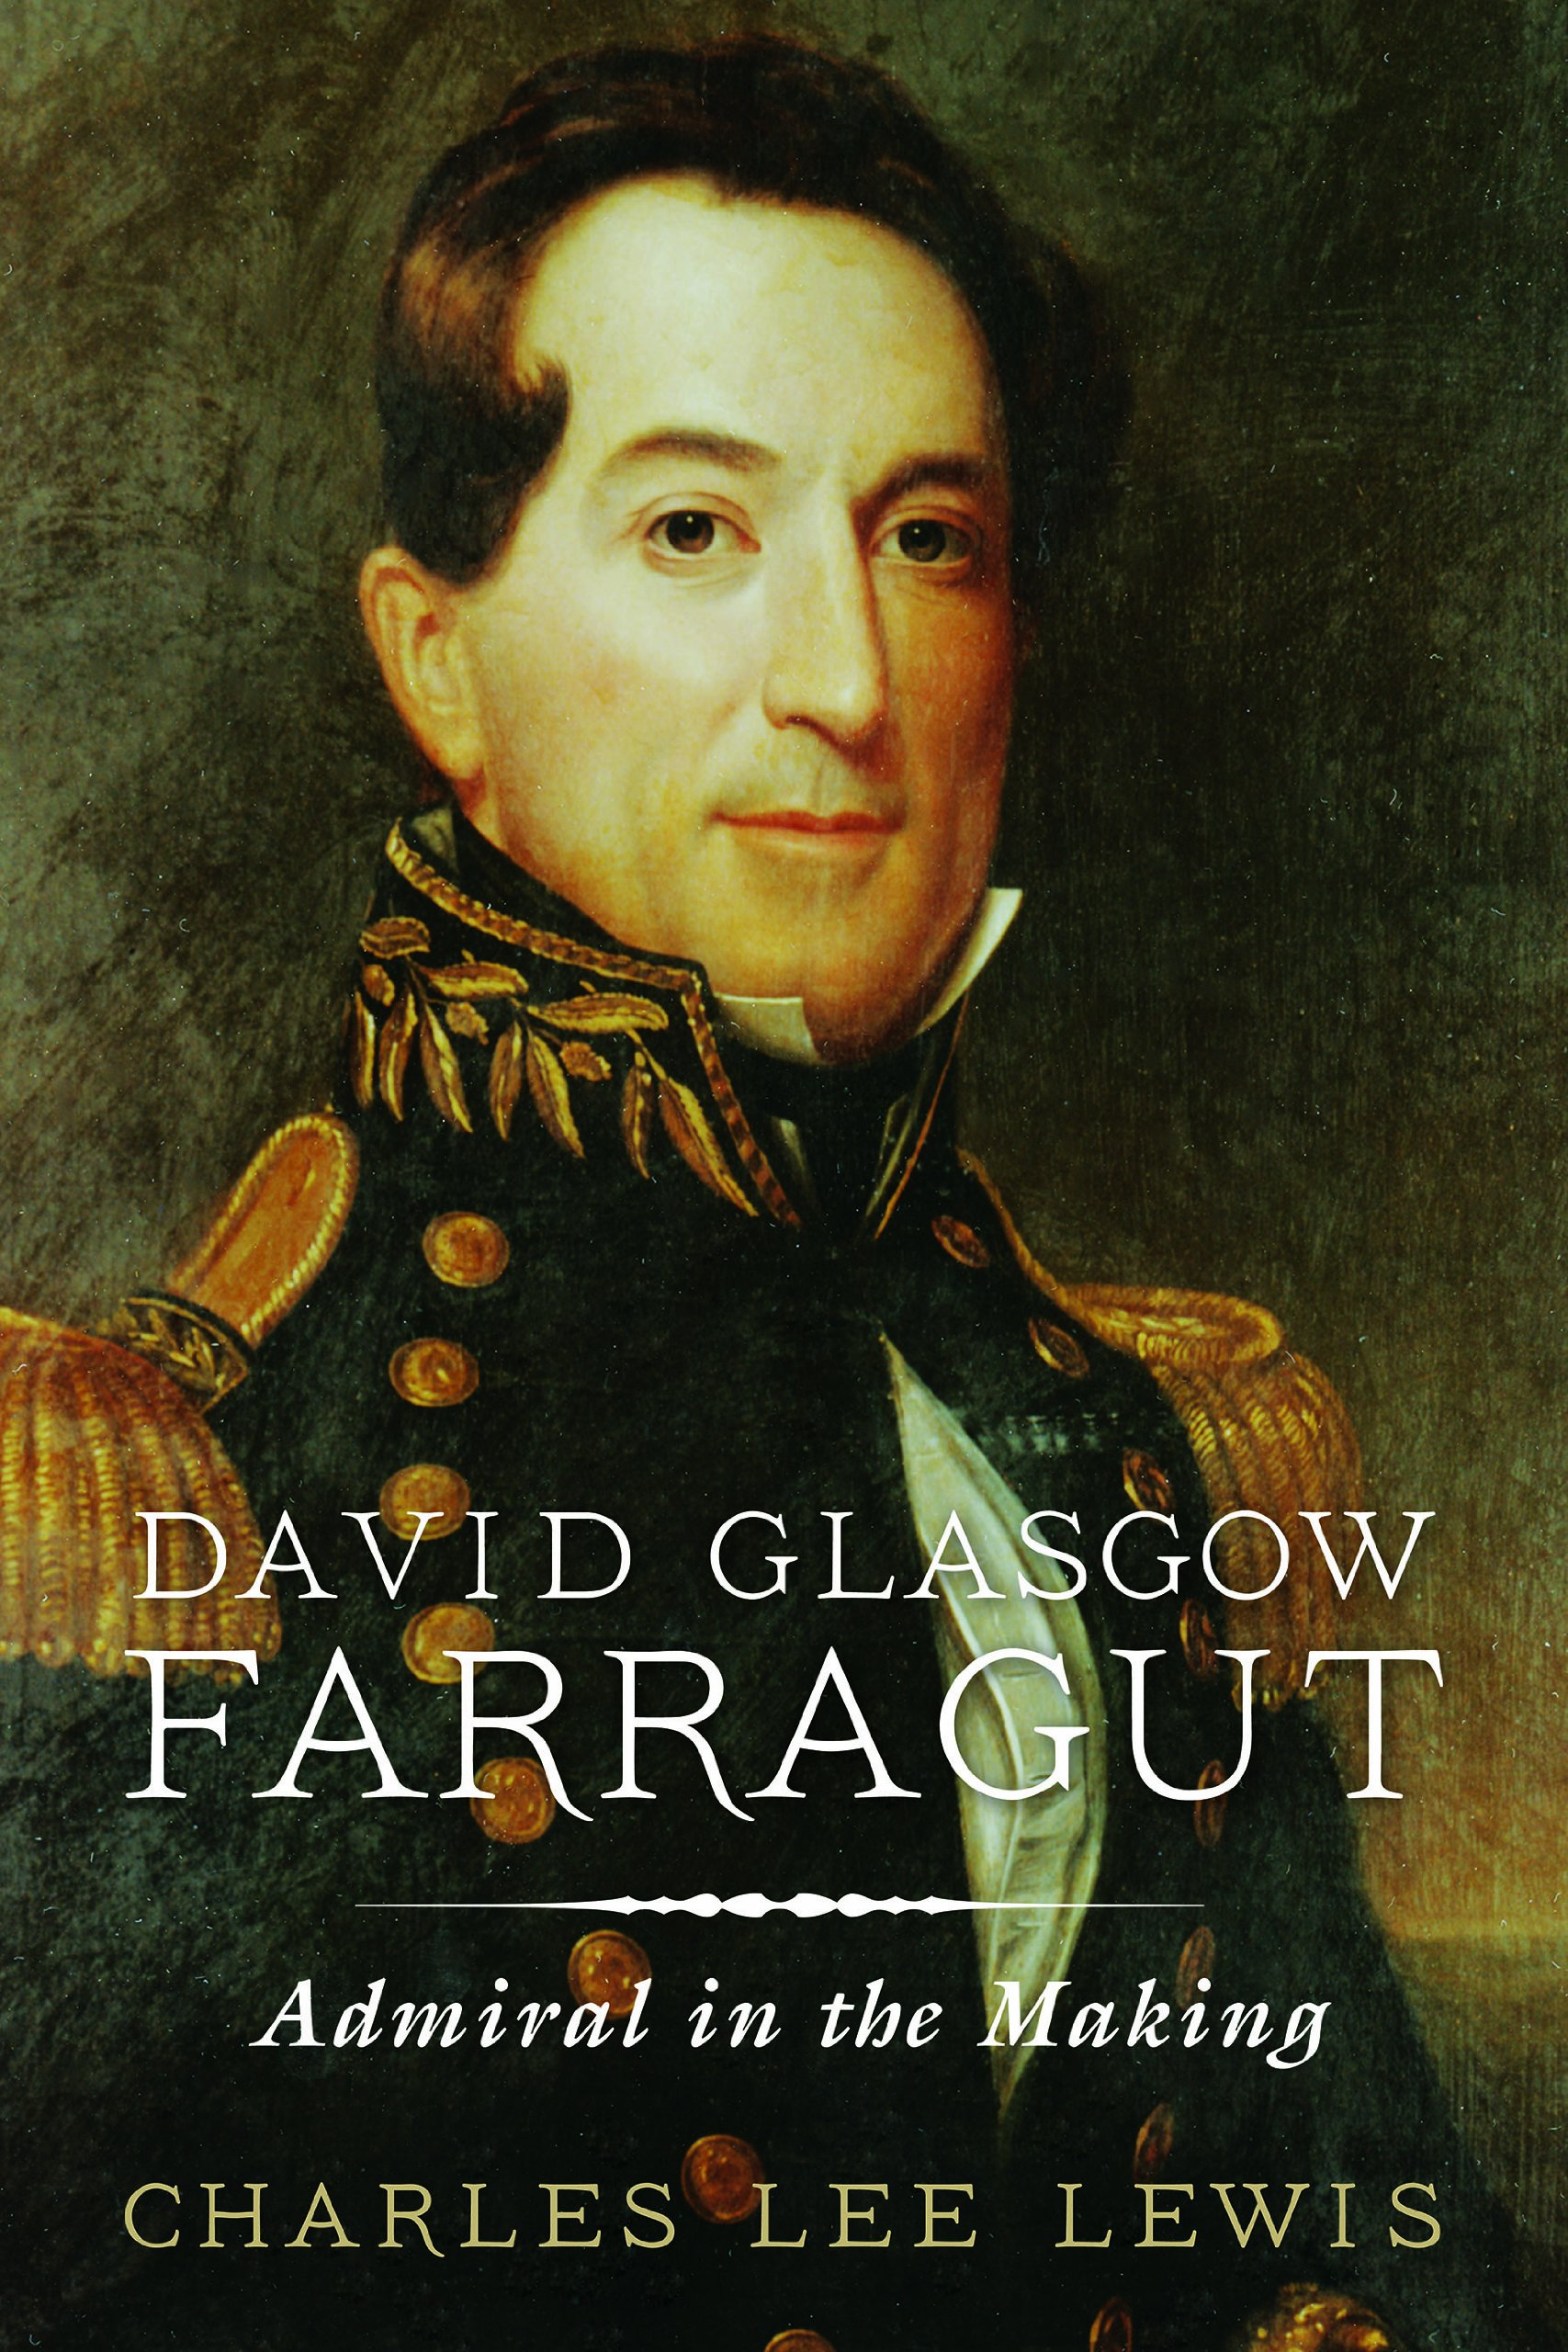 David Glasgow Farragut: Admiral in the Making-Click the link below for more information about this book